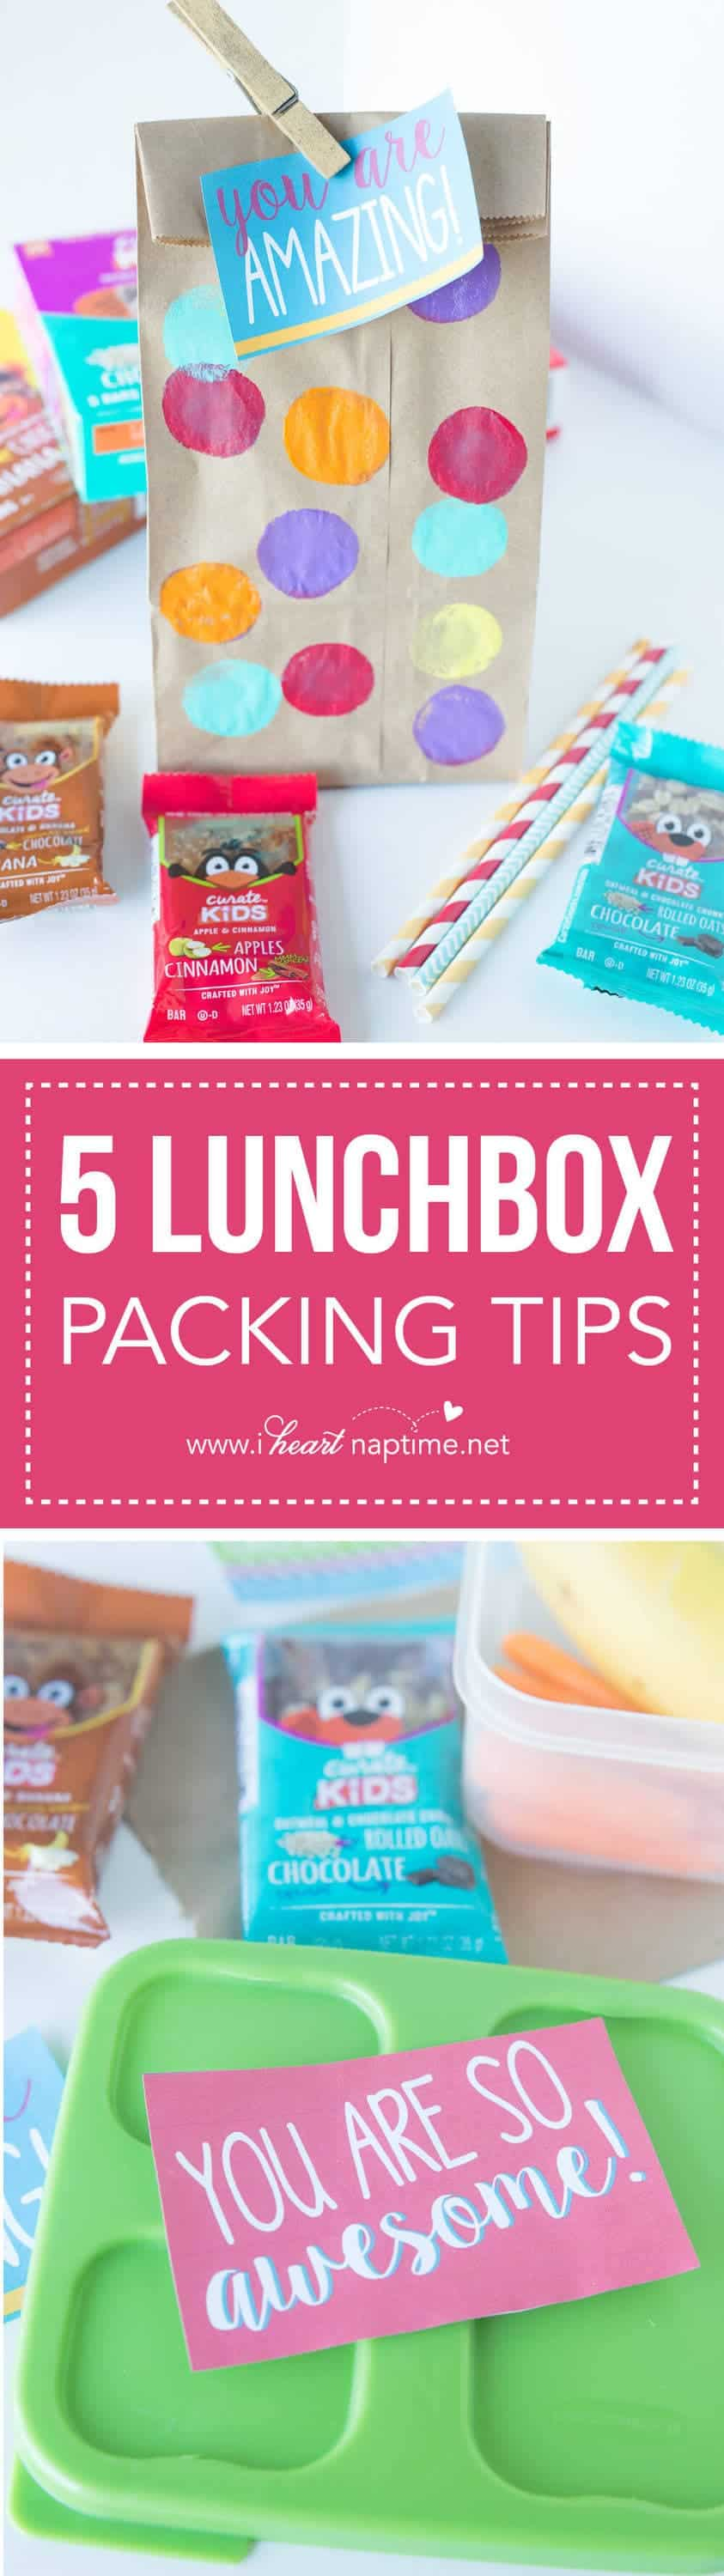 Five Lunchbox Packing Tips... get ready for back-to-school with these great tips to help organize lunch packing and make them fun! These simple tips will help make lunchbox packing less stressful for the parents, too!